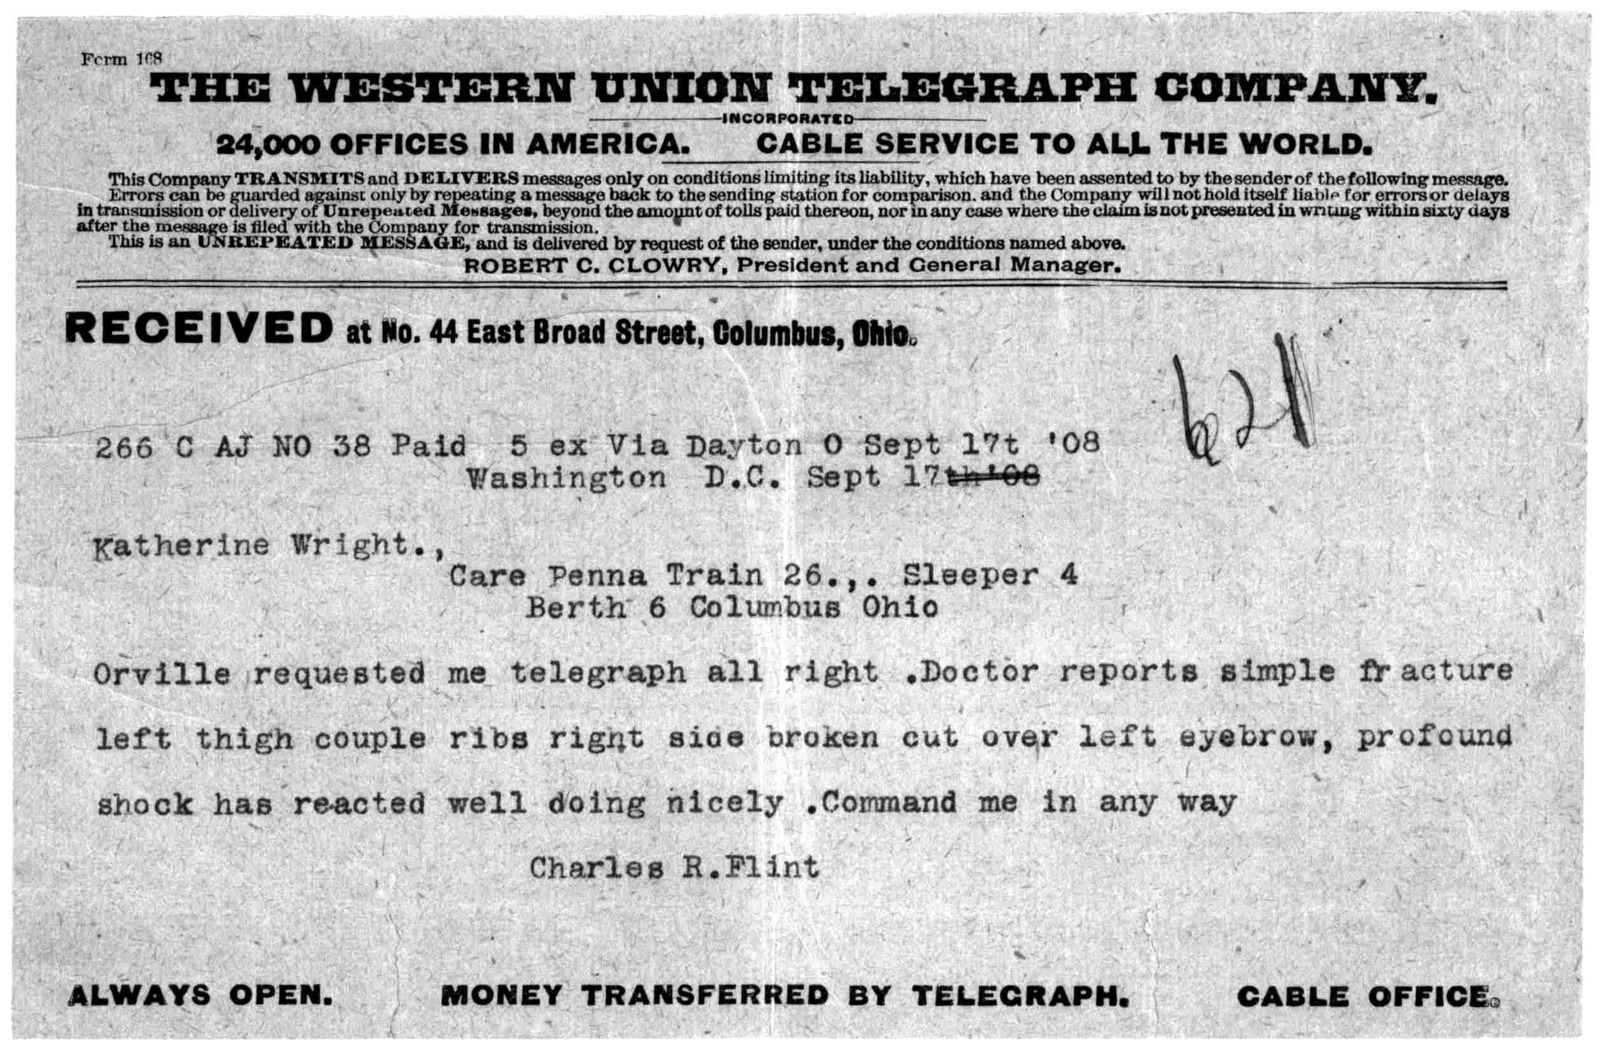 Subject File:  Foreign Business--Agents and Representatives--Flint & Co., September 1908